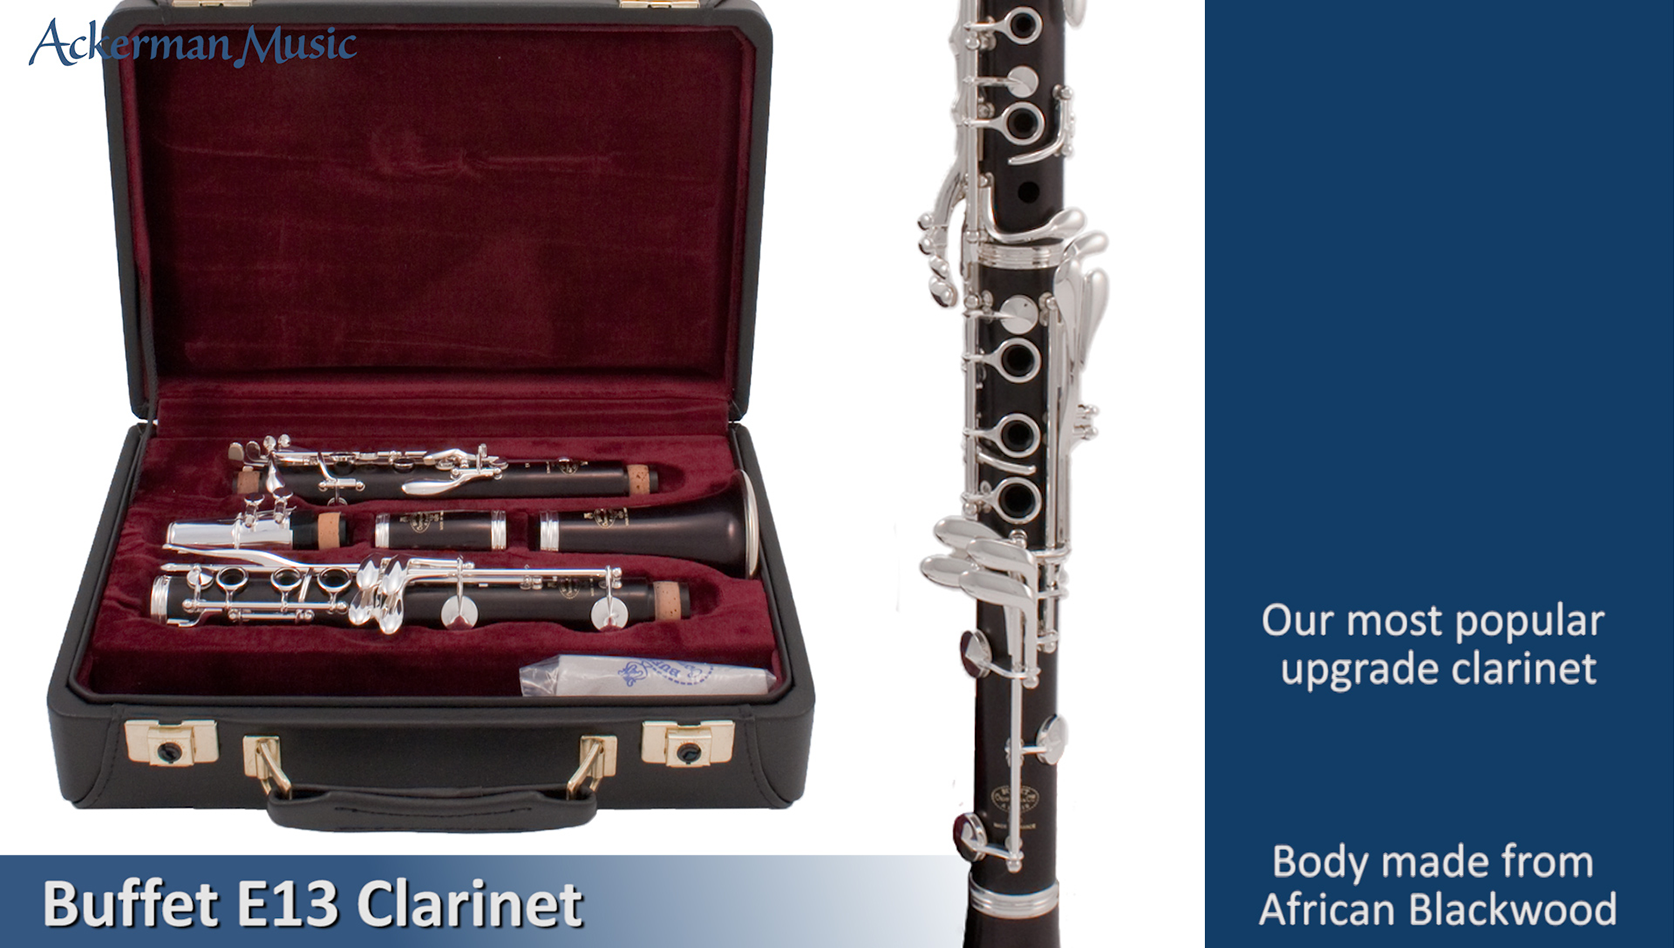 Buffet E13 Clarinet